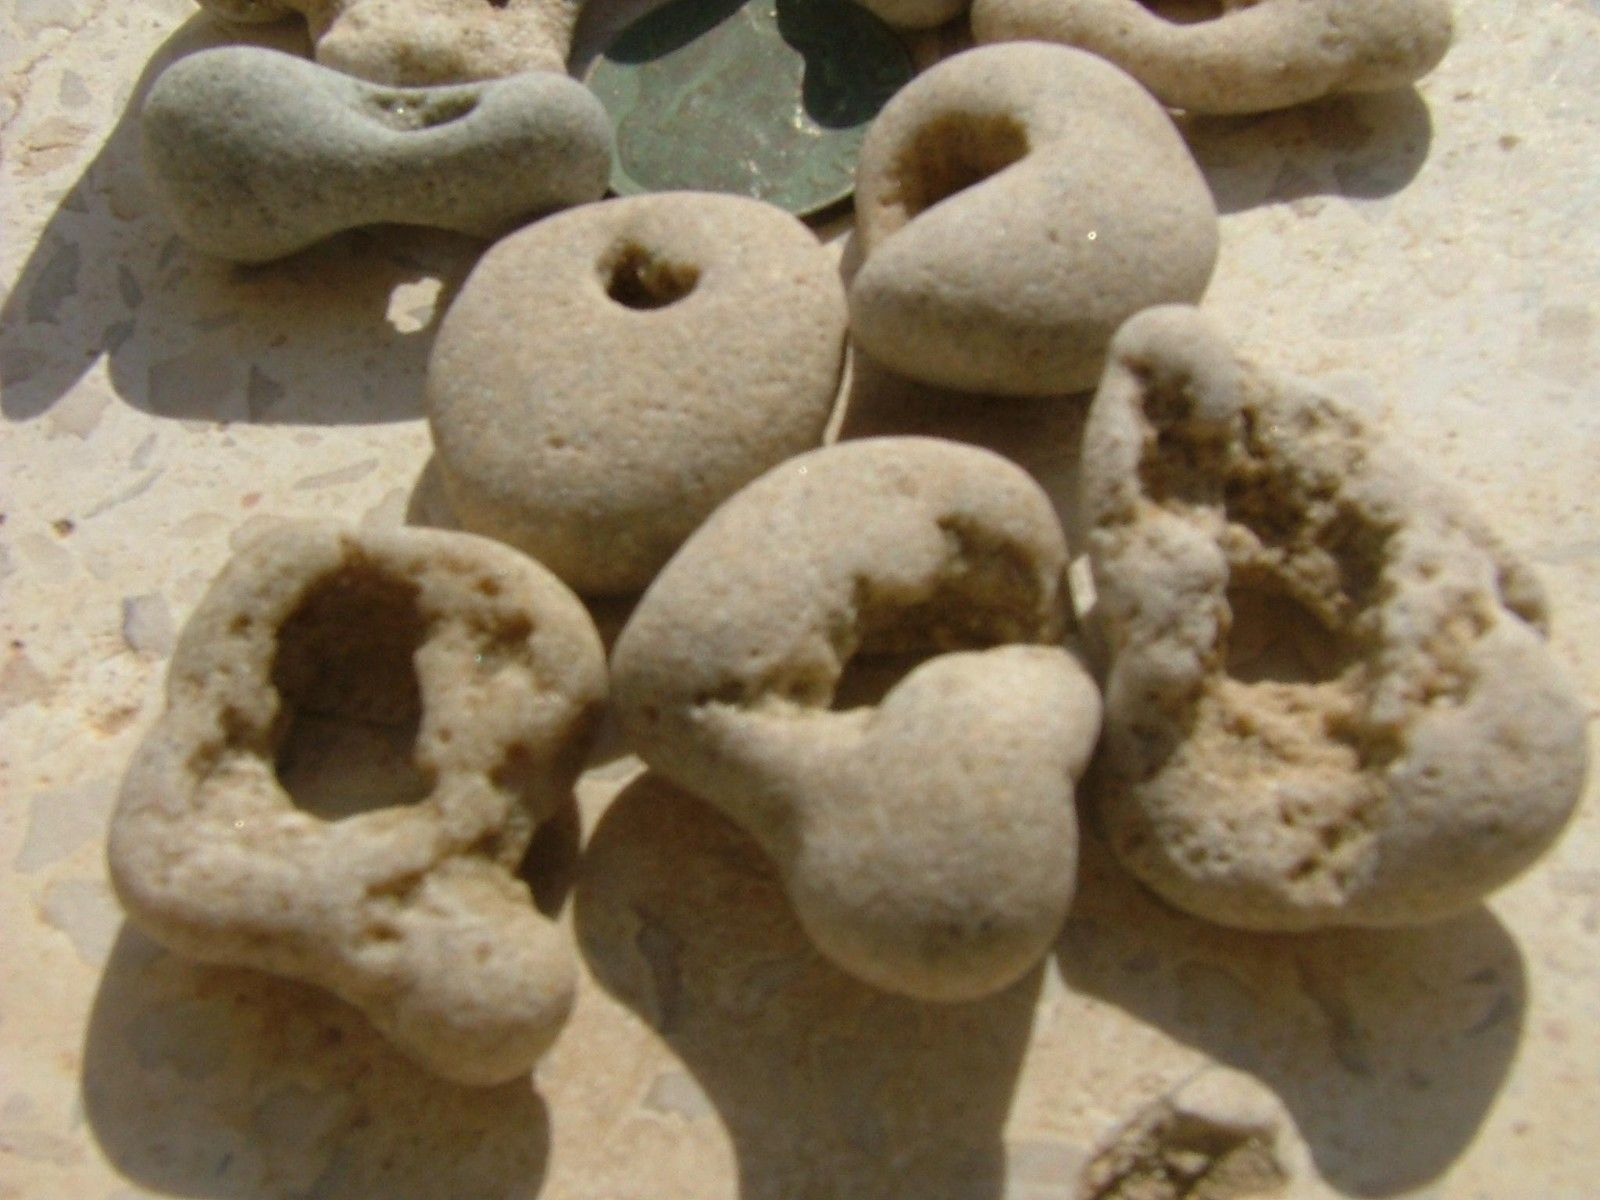 Primary image for 10 small - medium Beach Natural Pebbles Stone Rock with holes WOW from Israel #3